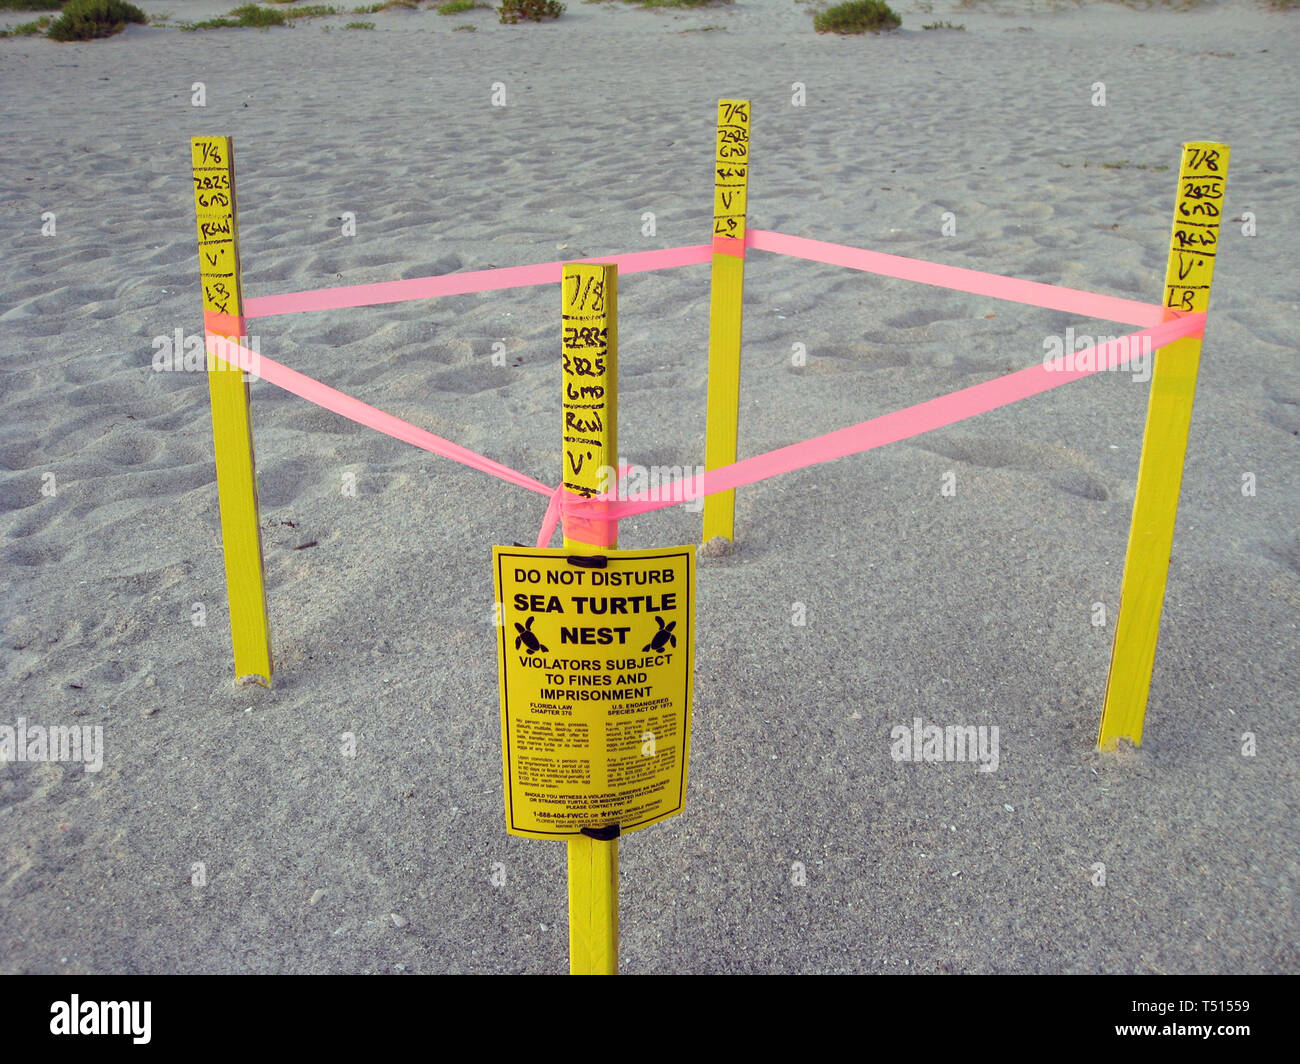 Dig A Hole Stock Photos & Dig A Hole Stock Images - Alamy